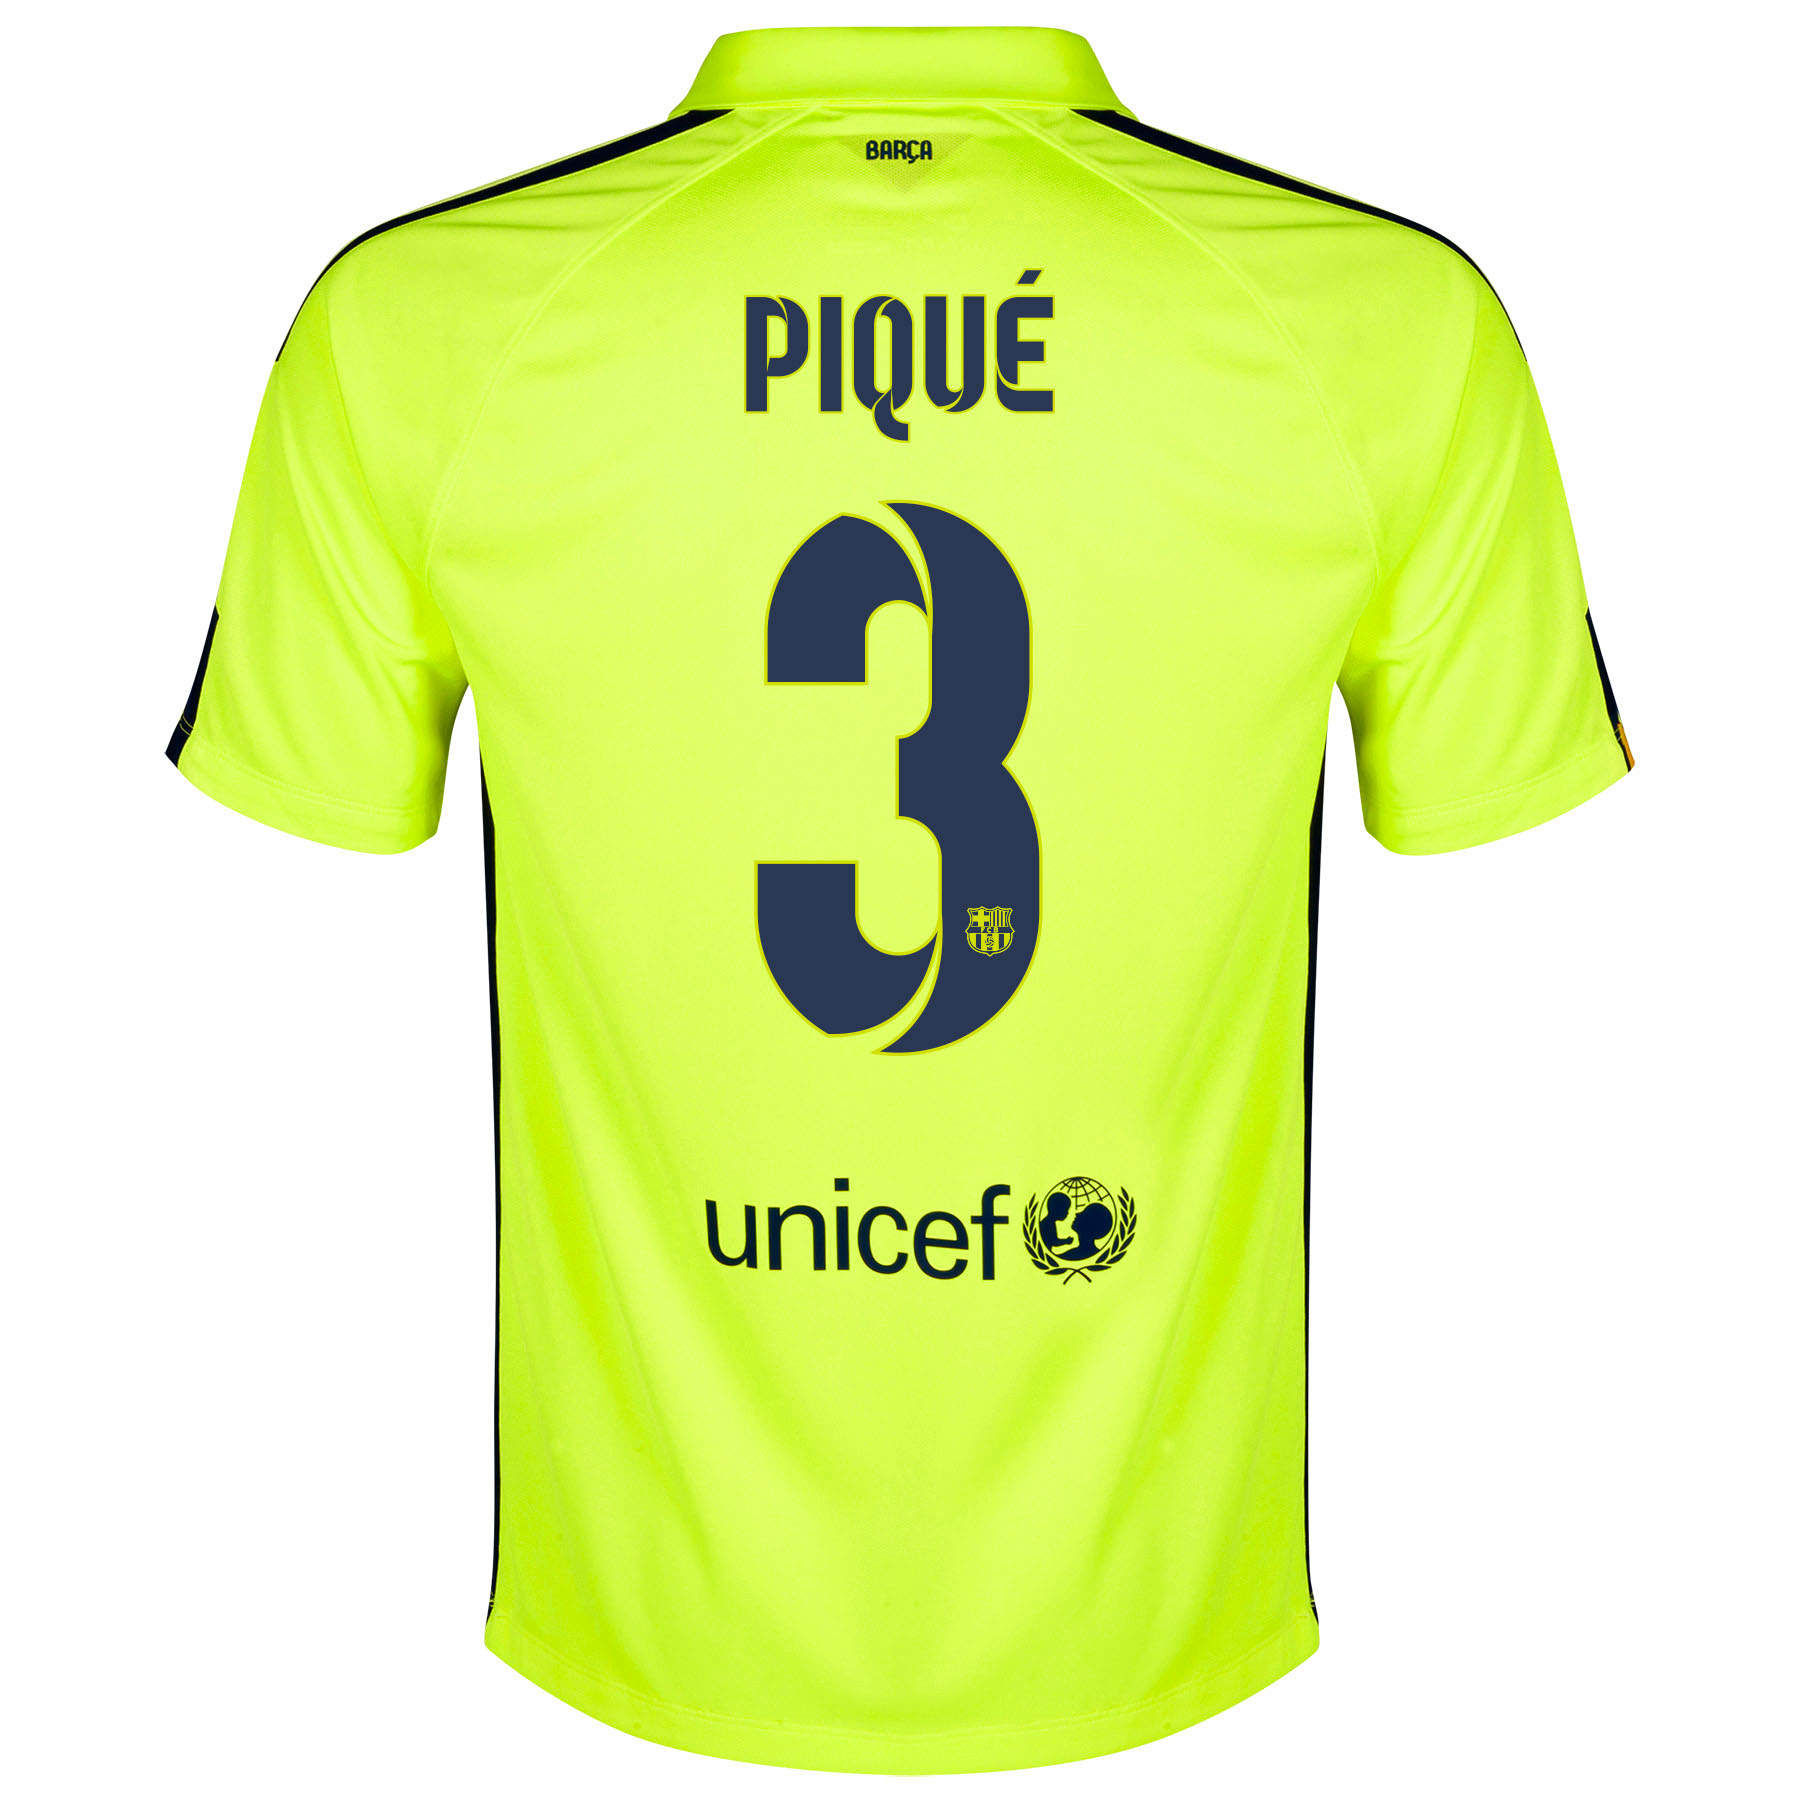 Barcelona Third Shirt 2014/15 Yellow with Pique 3 printing